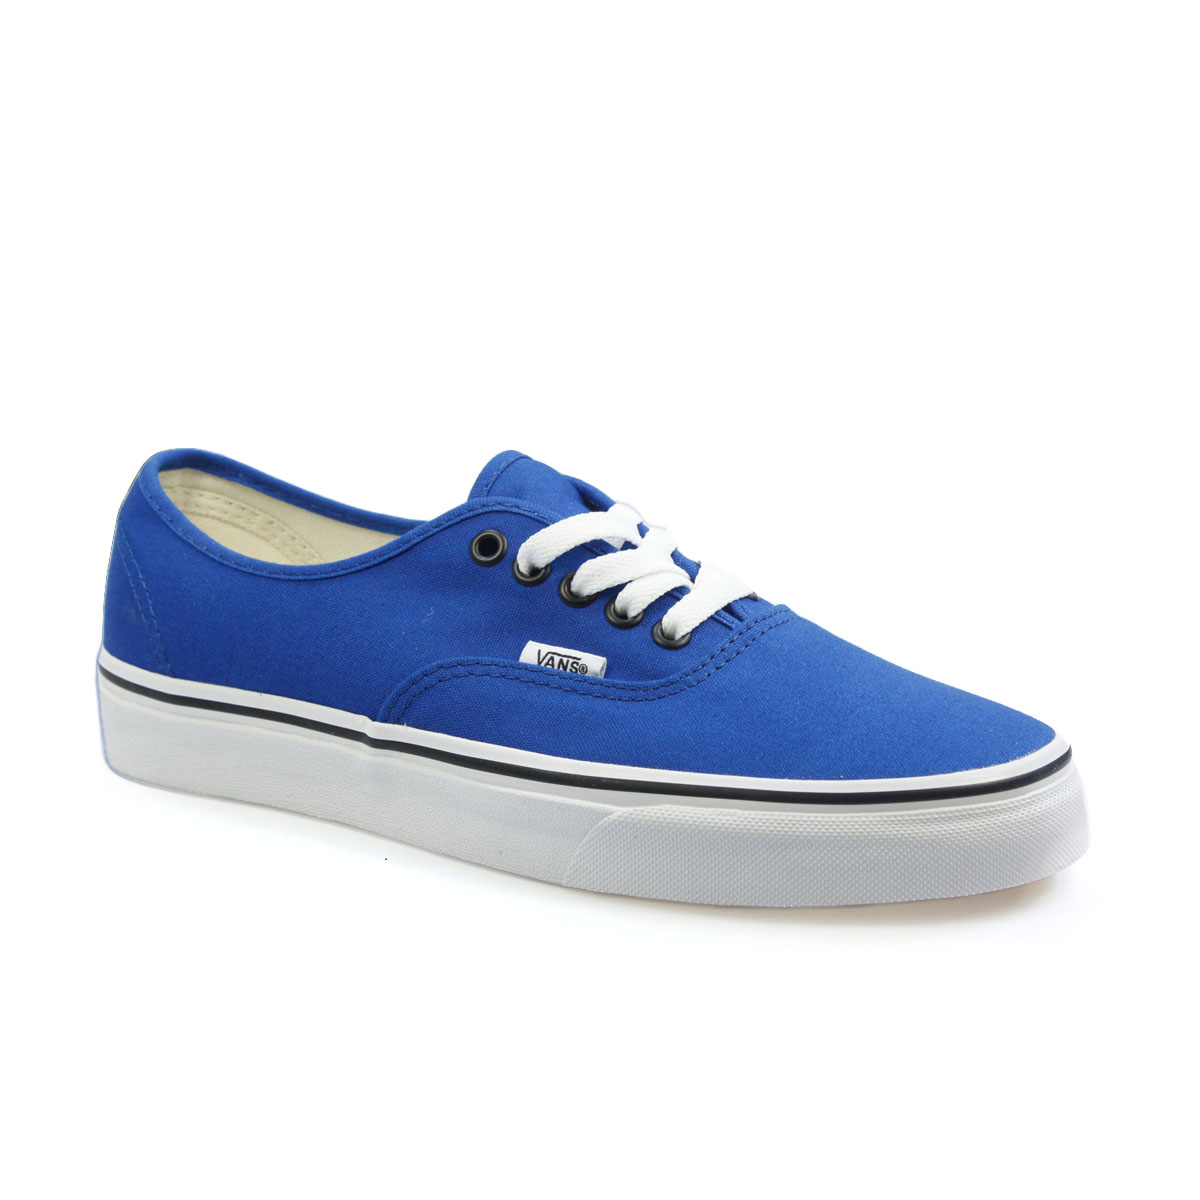 Brilliant Vans Have  Came In Navy Blue, White, Green And Red, But Years Later, It Was The Newly Introduced Black Color Which Made It A Bestseller Among The Collection, There Were Boat Shoes, Canvas Boat Shoes And Leather Deck Shoes For Men,